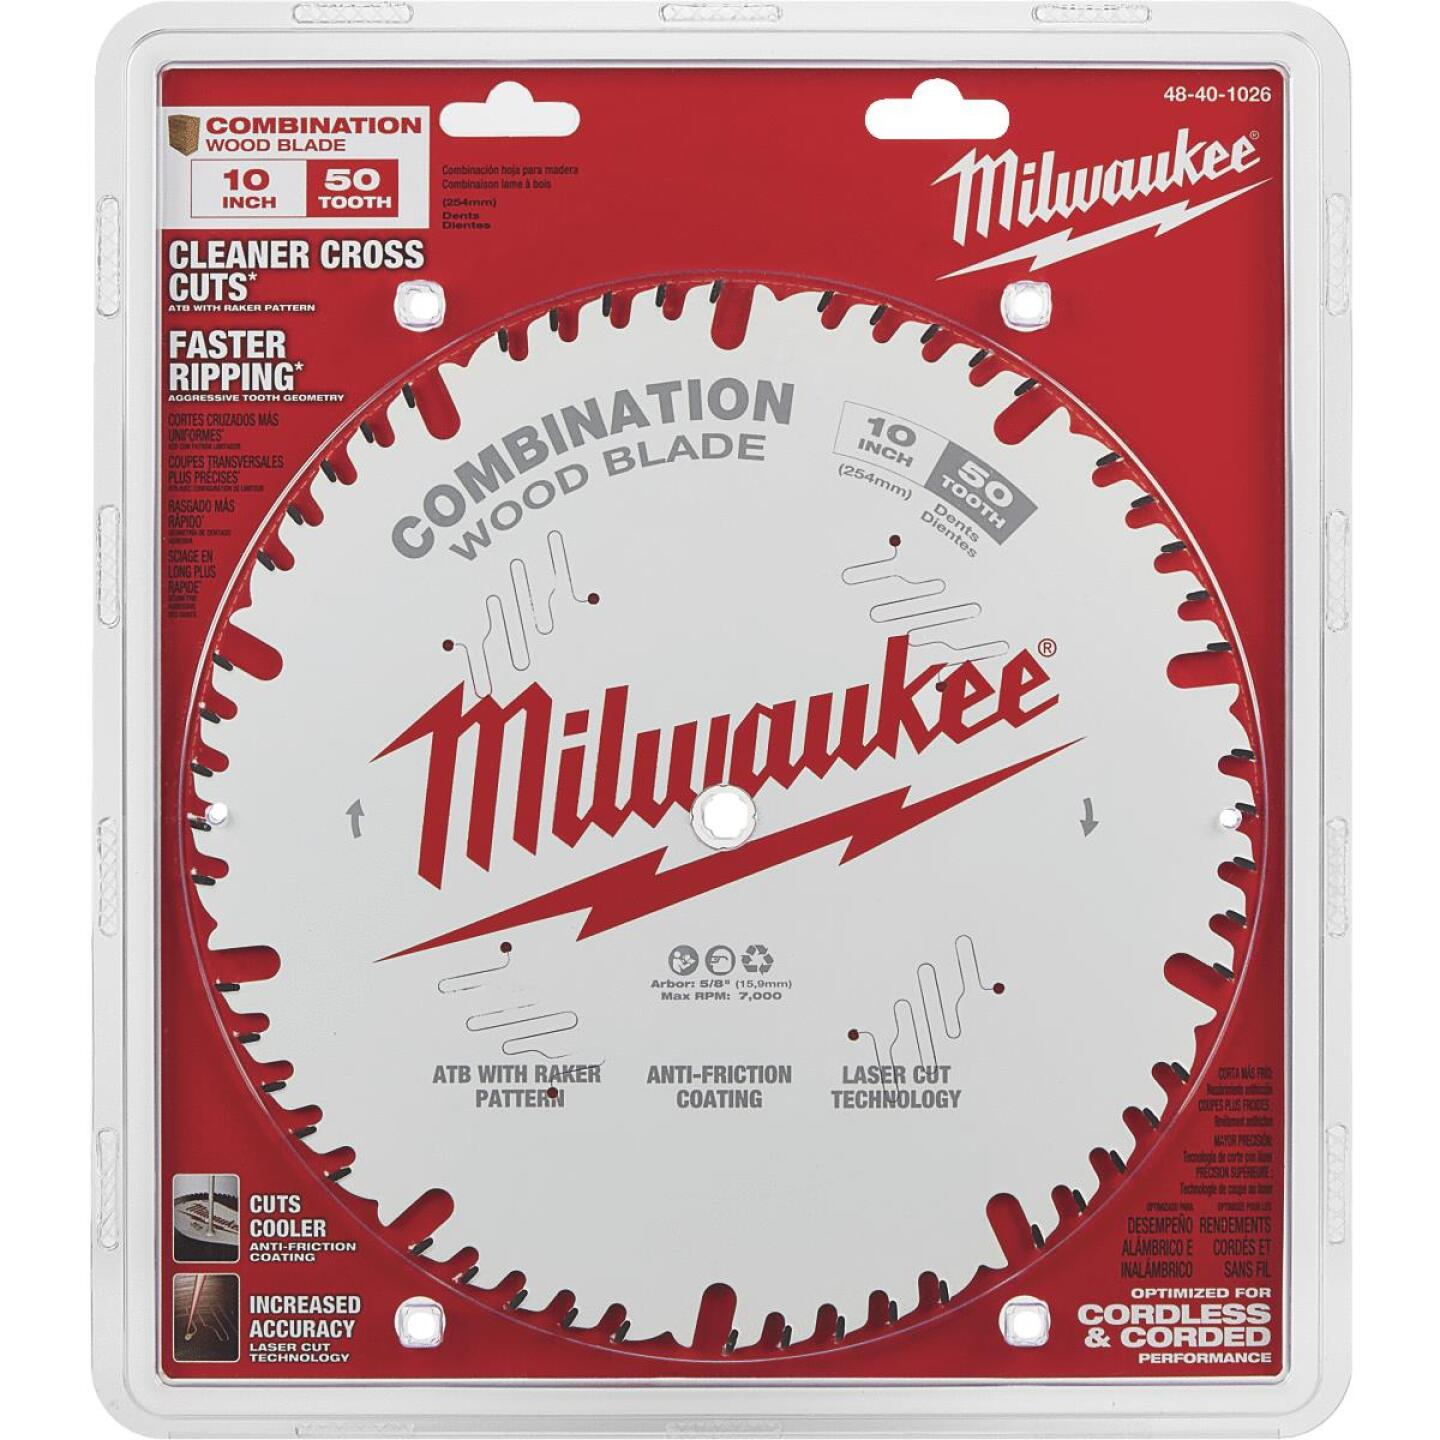 Milwaukee 10 In. 50-Tooth General Purpose Combination Wood Circular Saw Blade Image 2